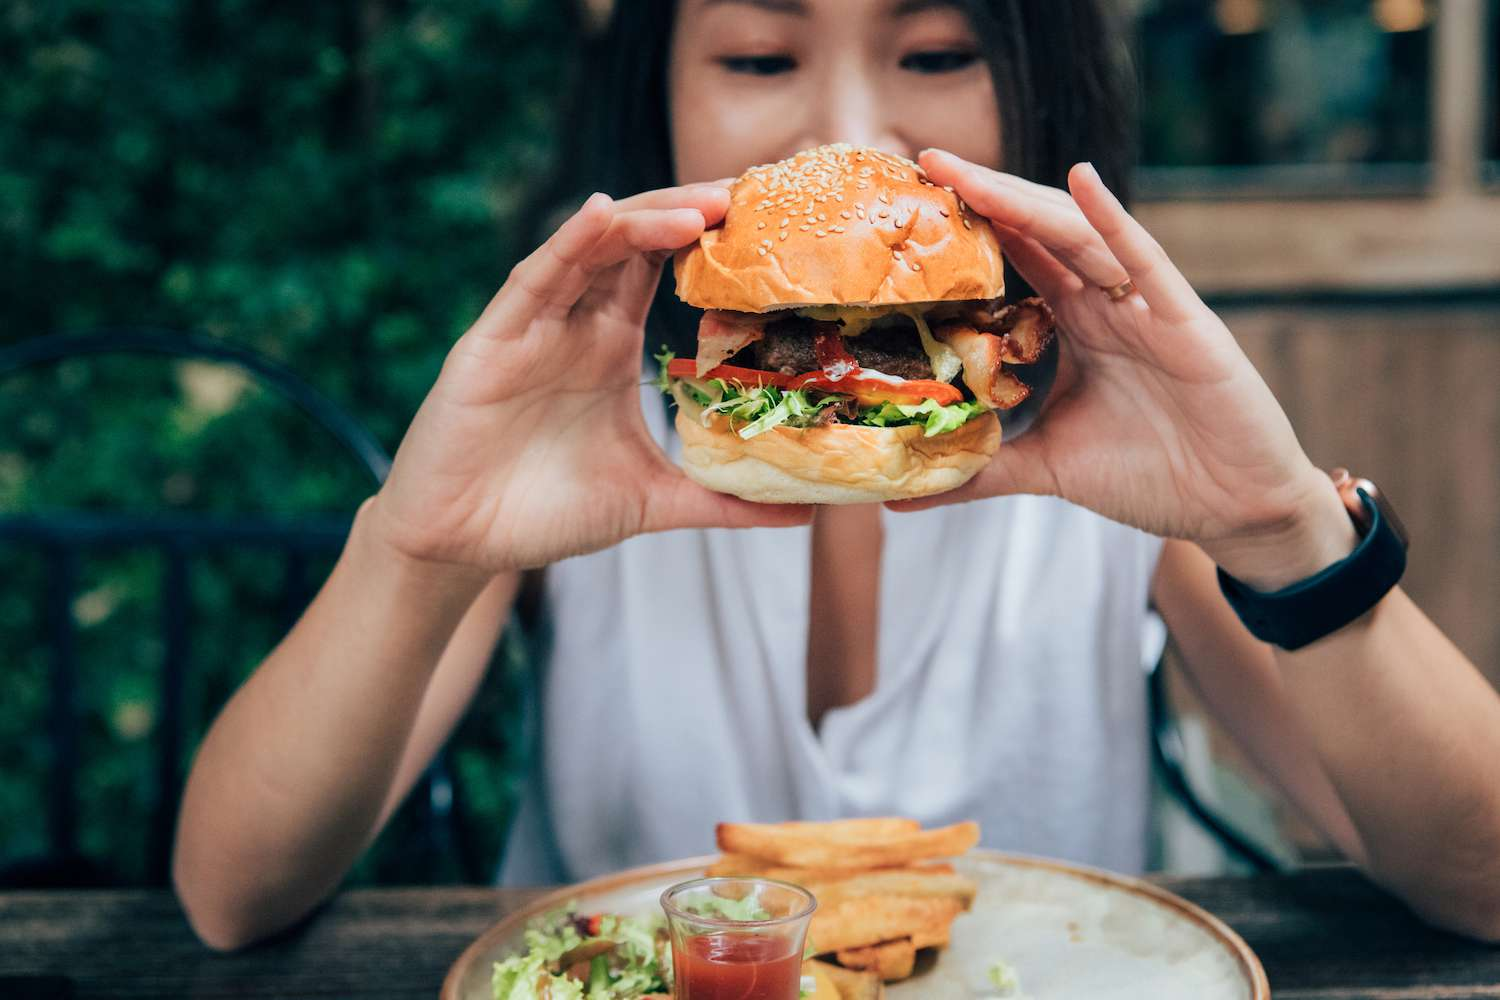 Young Woman Eating Burger At Restaurant With Outdoor Seating